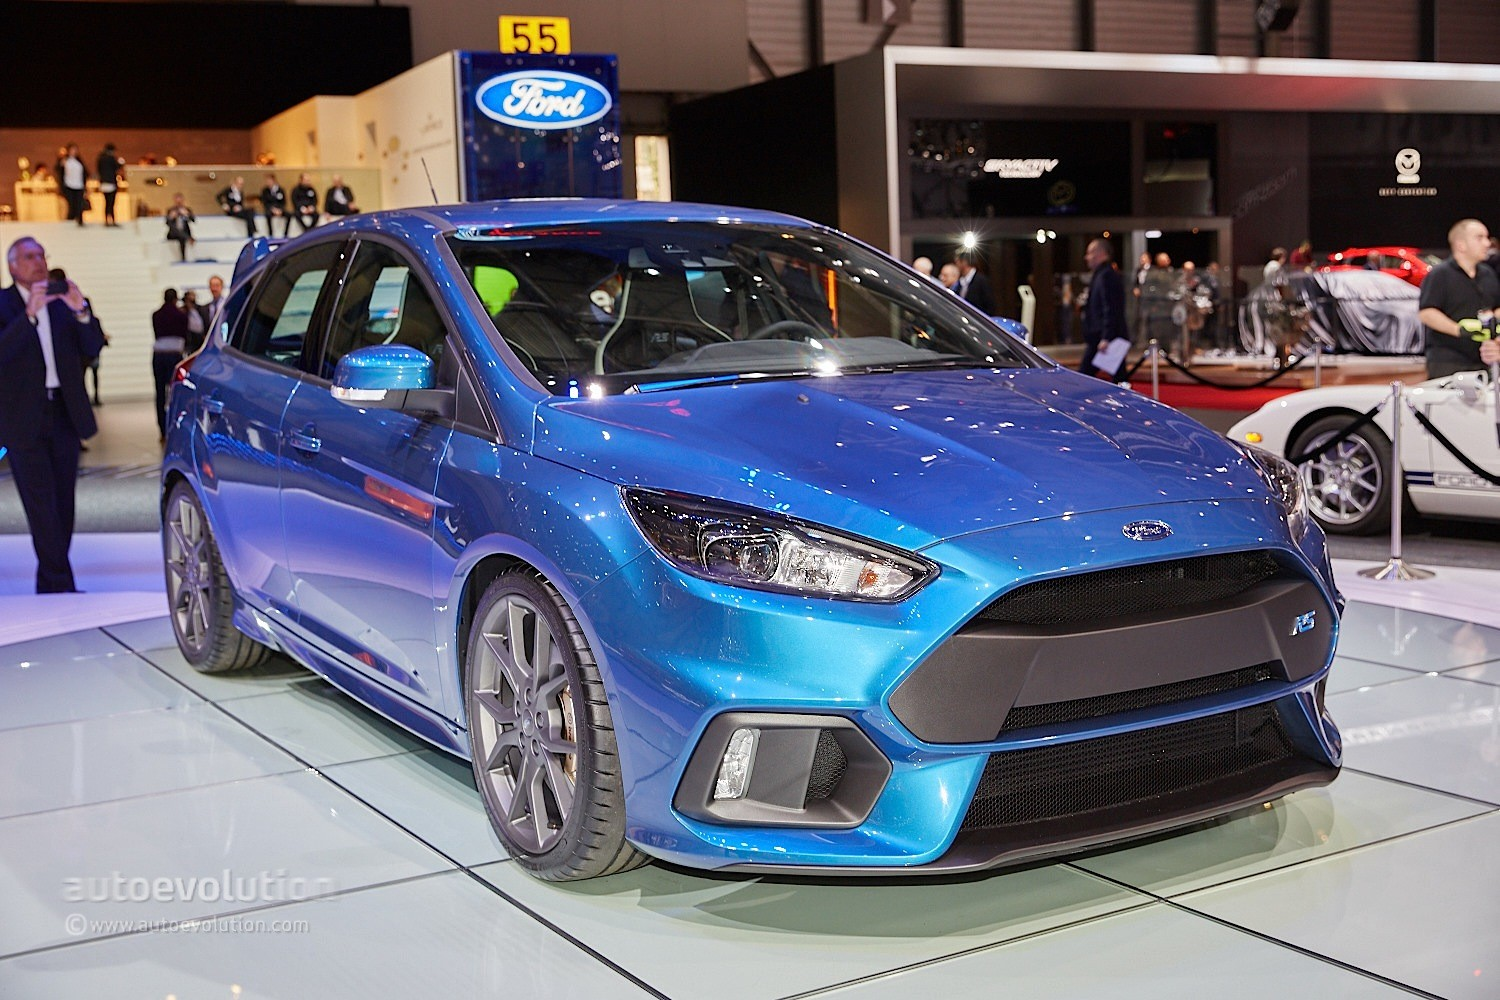 2016 Ford Mustang Ecoboost >> 2016 Ford Focus RS Is a Liquid Blue Hooligan's Hot Hatch in Geneva - autoevolution